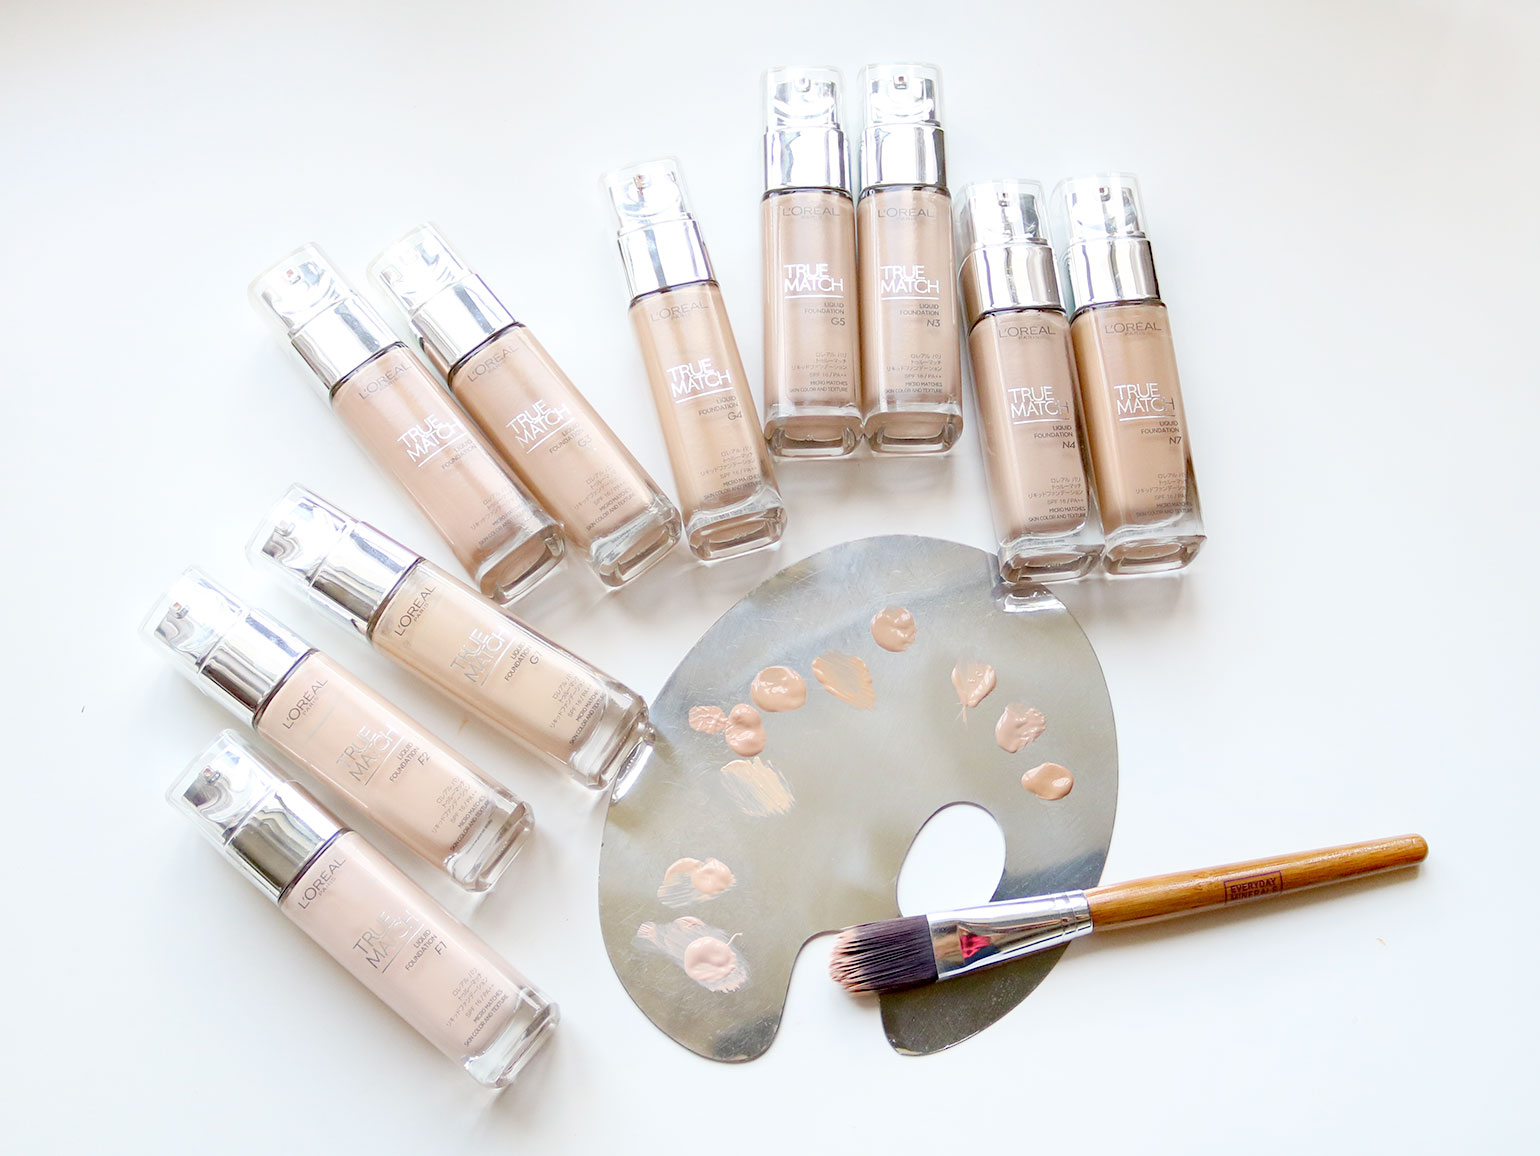 3 Loreal True Match Natural Finish Foundation Review and Swatches - She Sings Beauty by Gen-zel